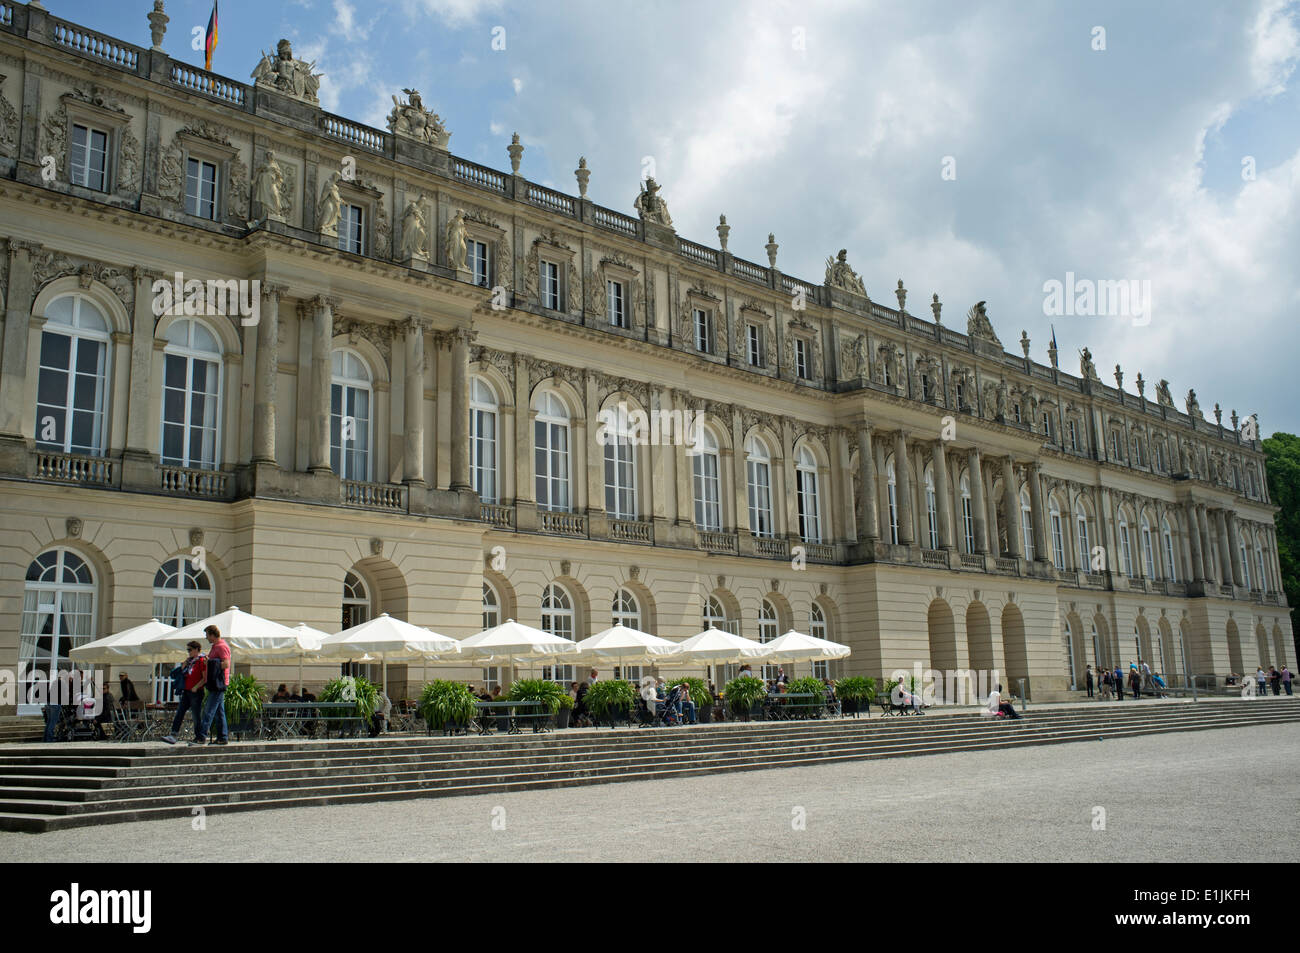 Herrenchiemsee royal palace, Herreninsel, Chiemsee, Bavaria, Germany. Stock Photo